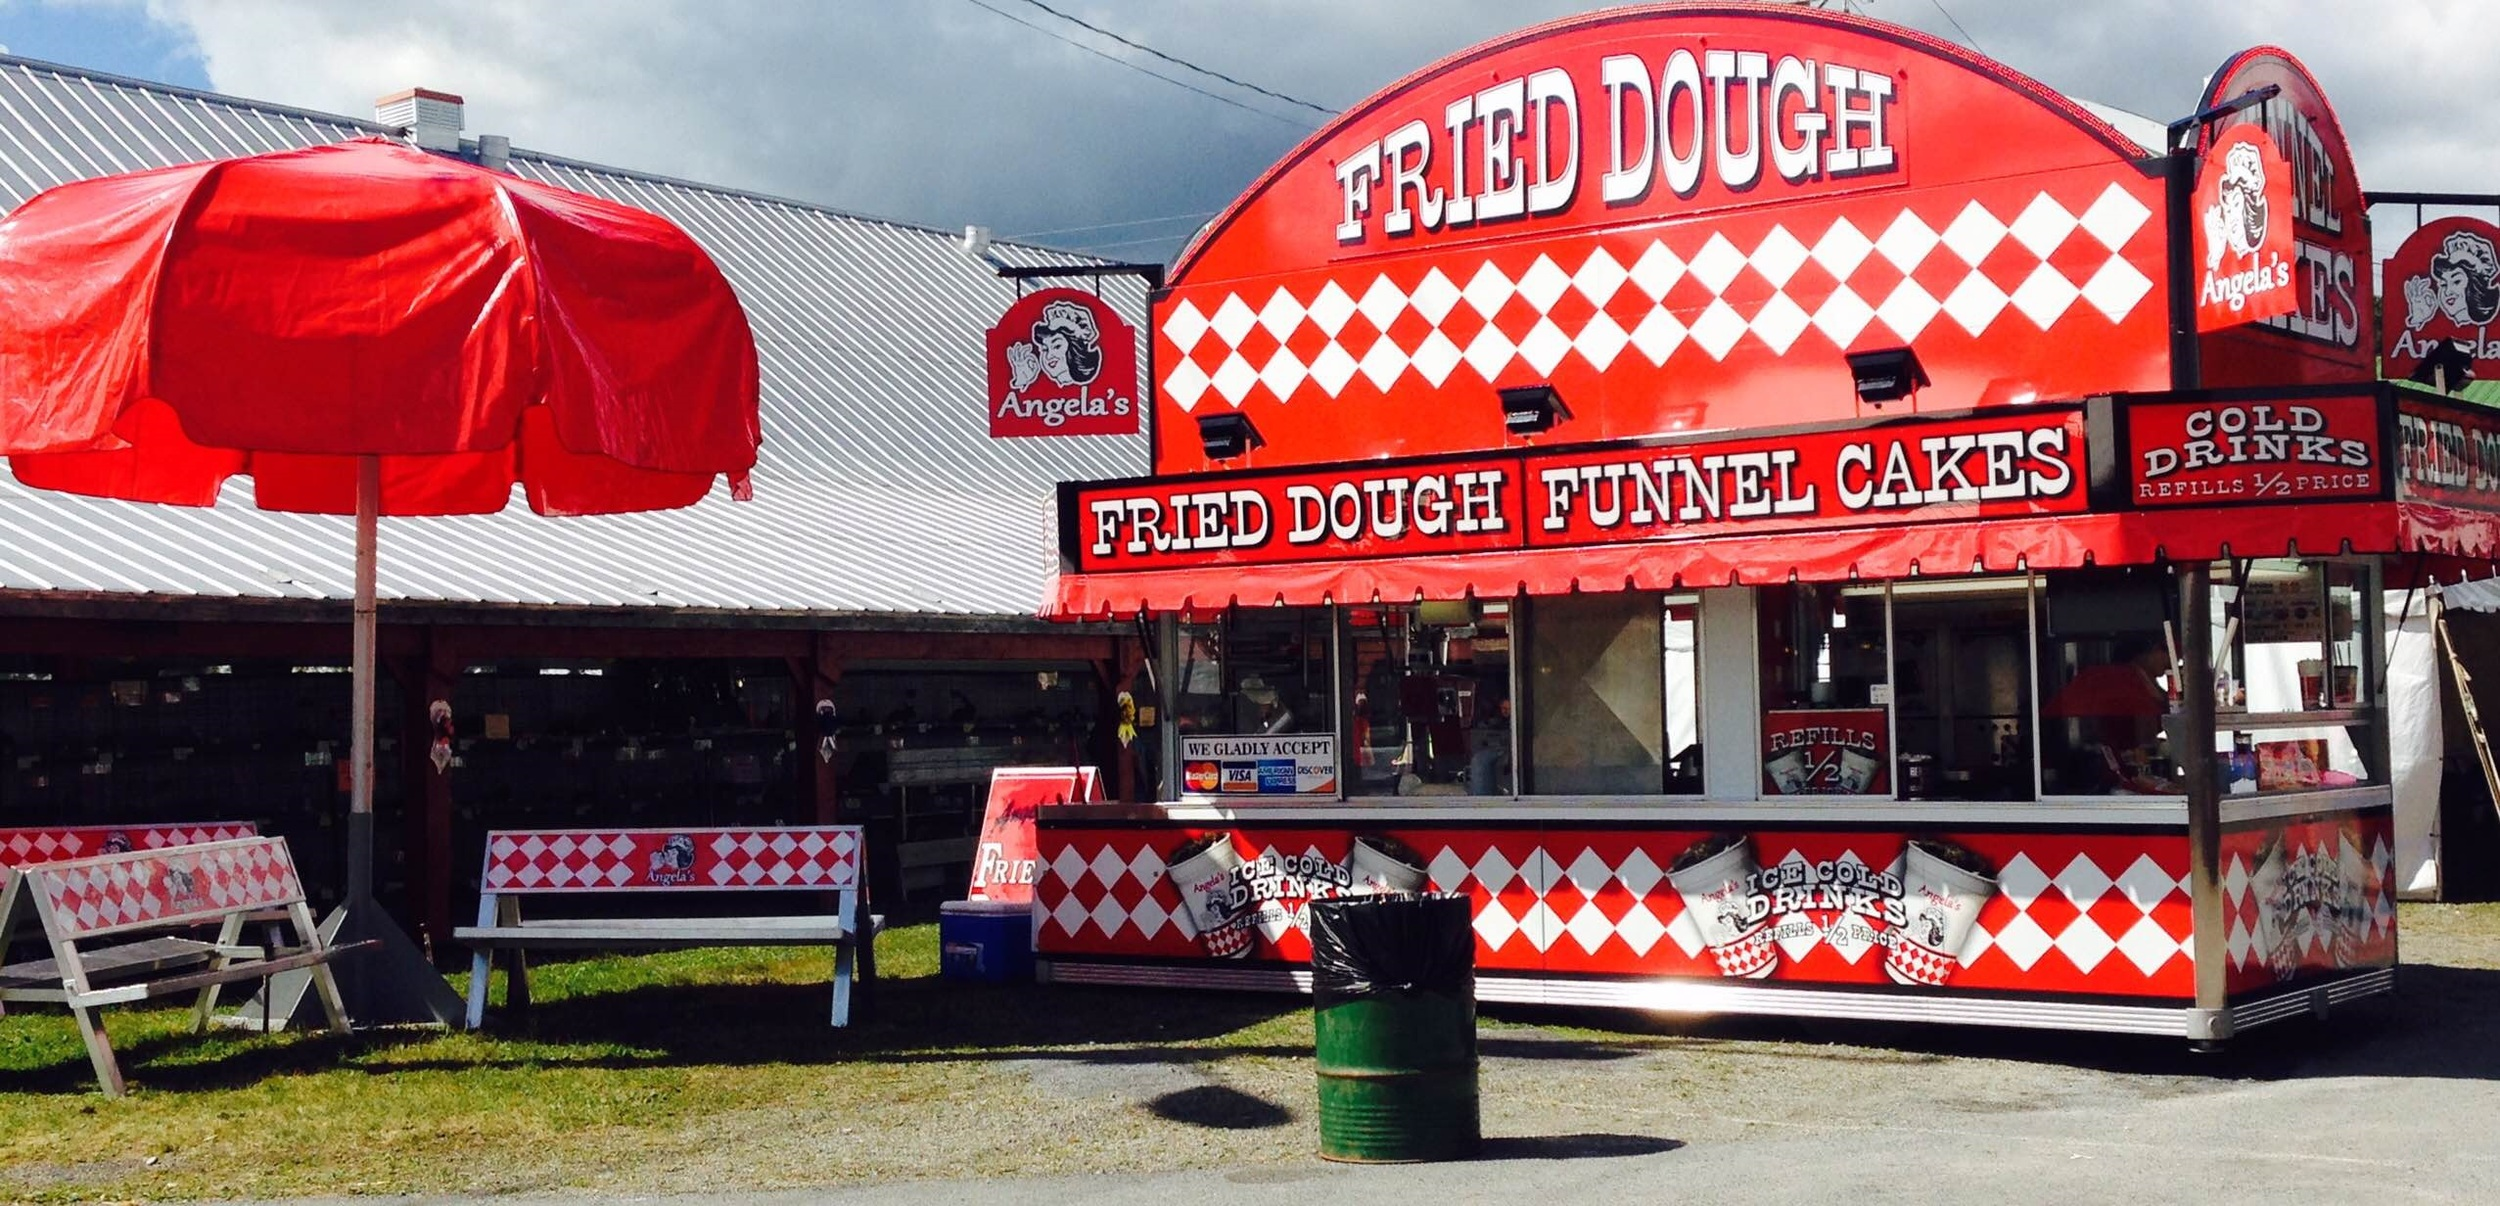 Angela's Fried Dough located by Gate 1 - The Altamont Fair 2015 - Altamont, NY